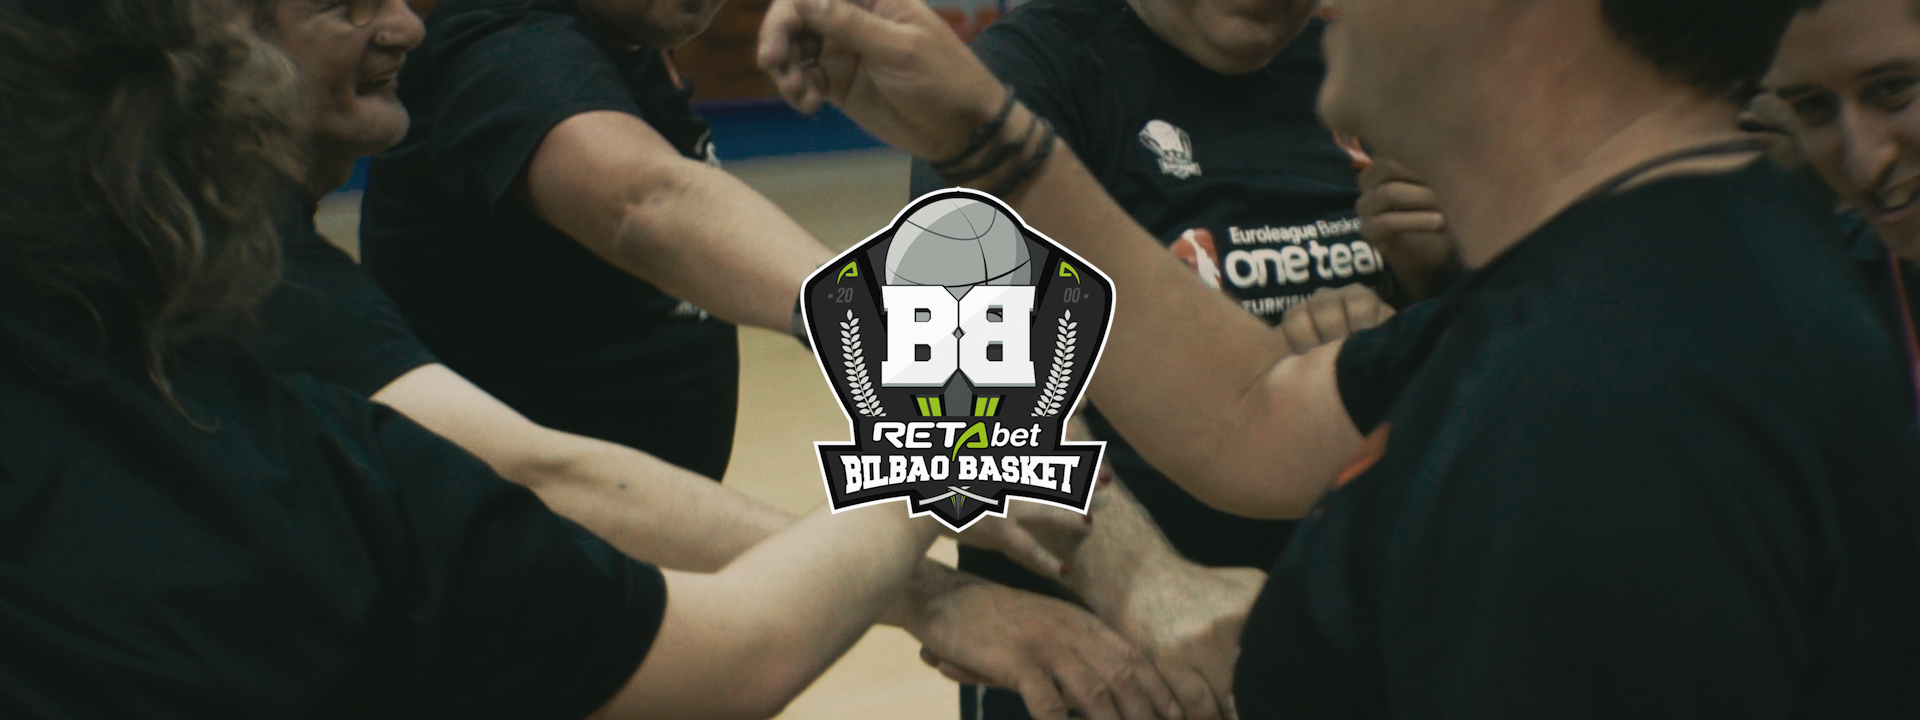 ONE TEAM ·Bilbao Basket·